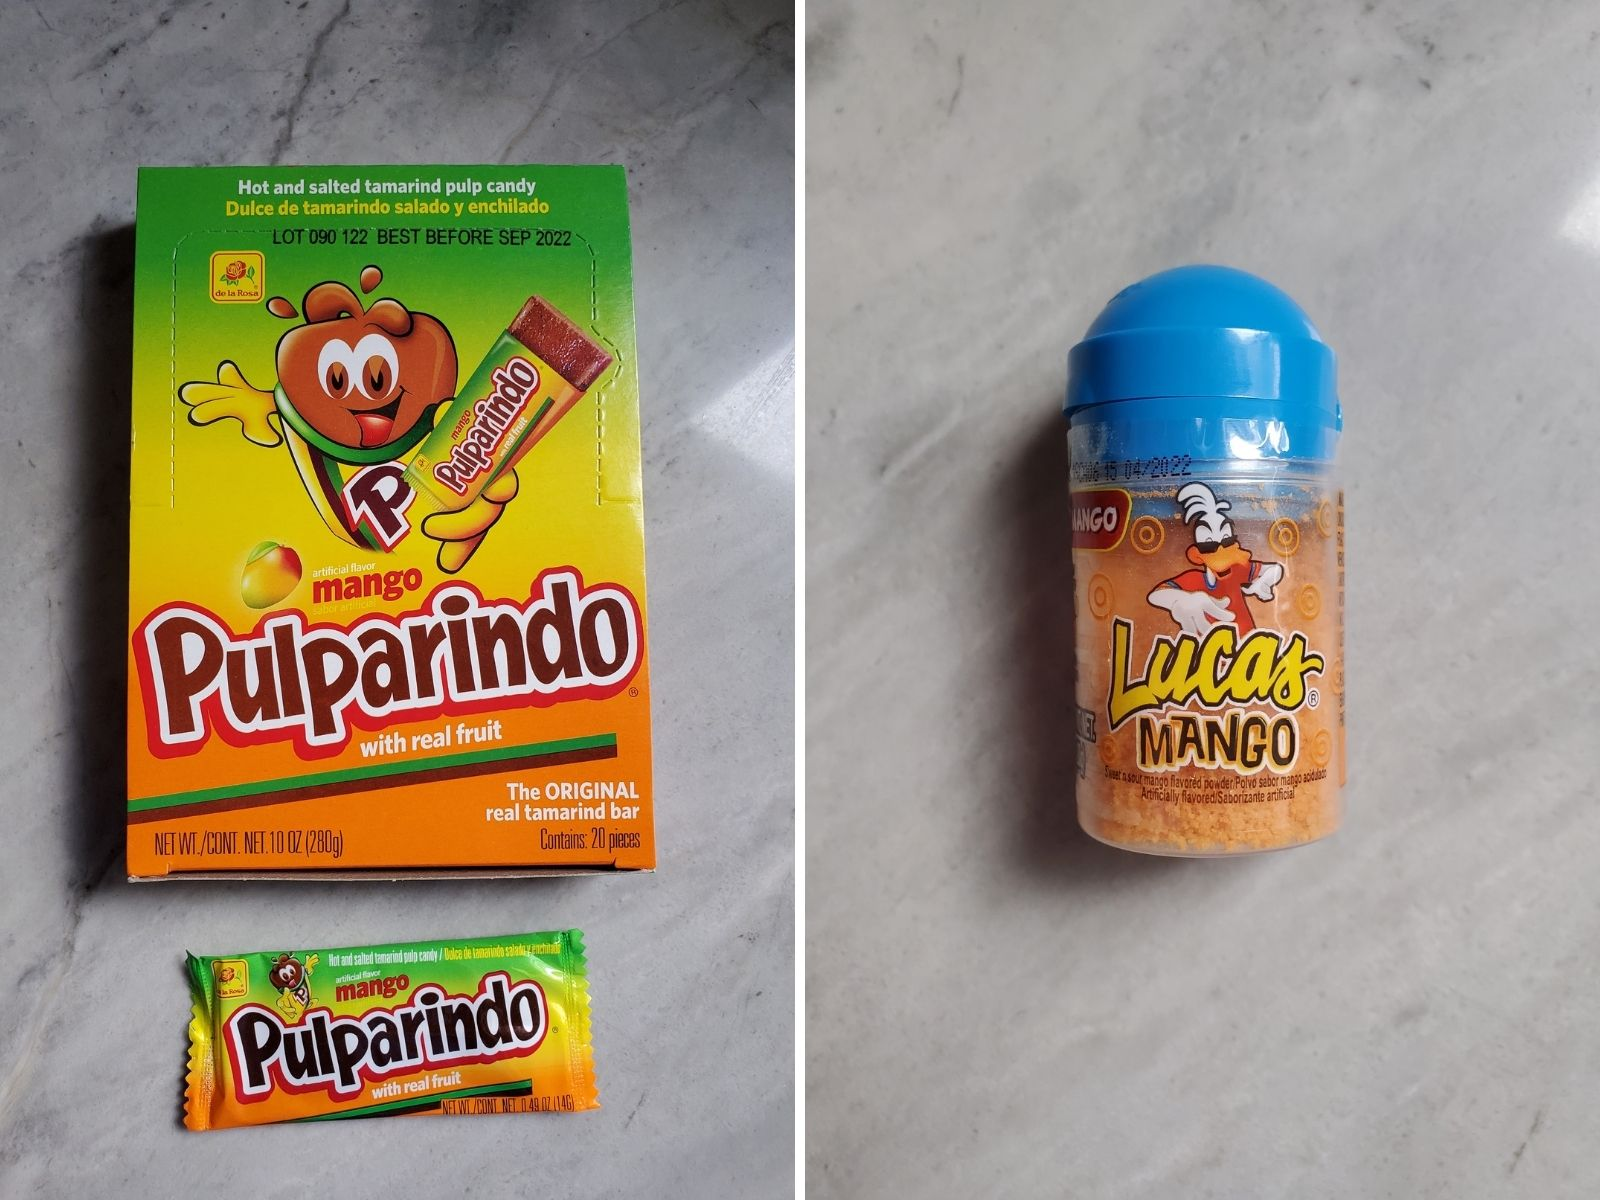 2 pictures, one showing the box of pulparindo and the other the jar of lucas mango candy